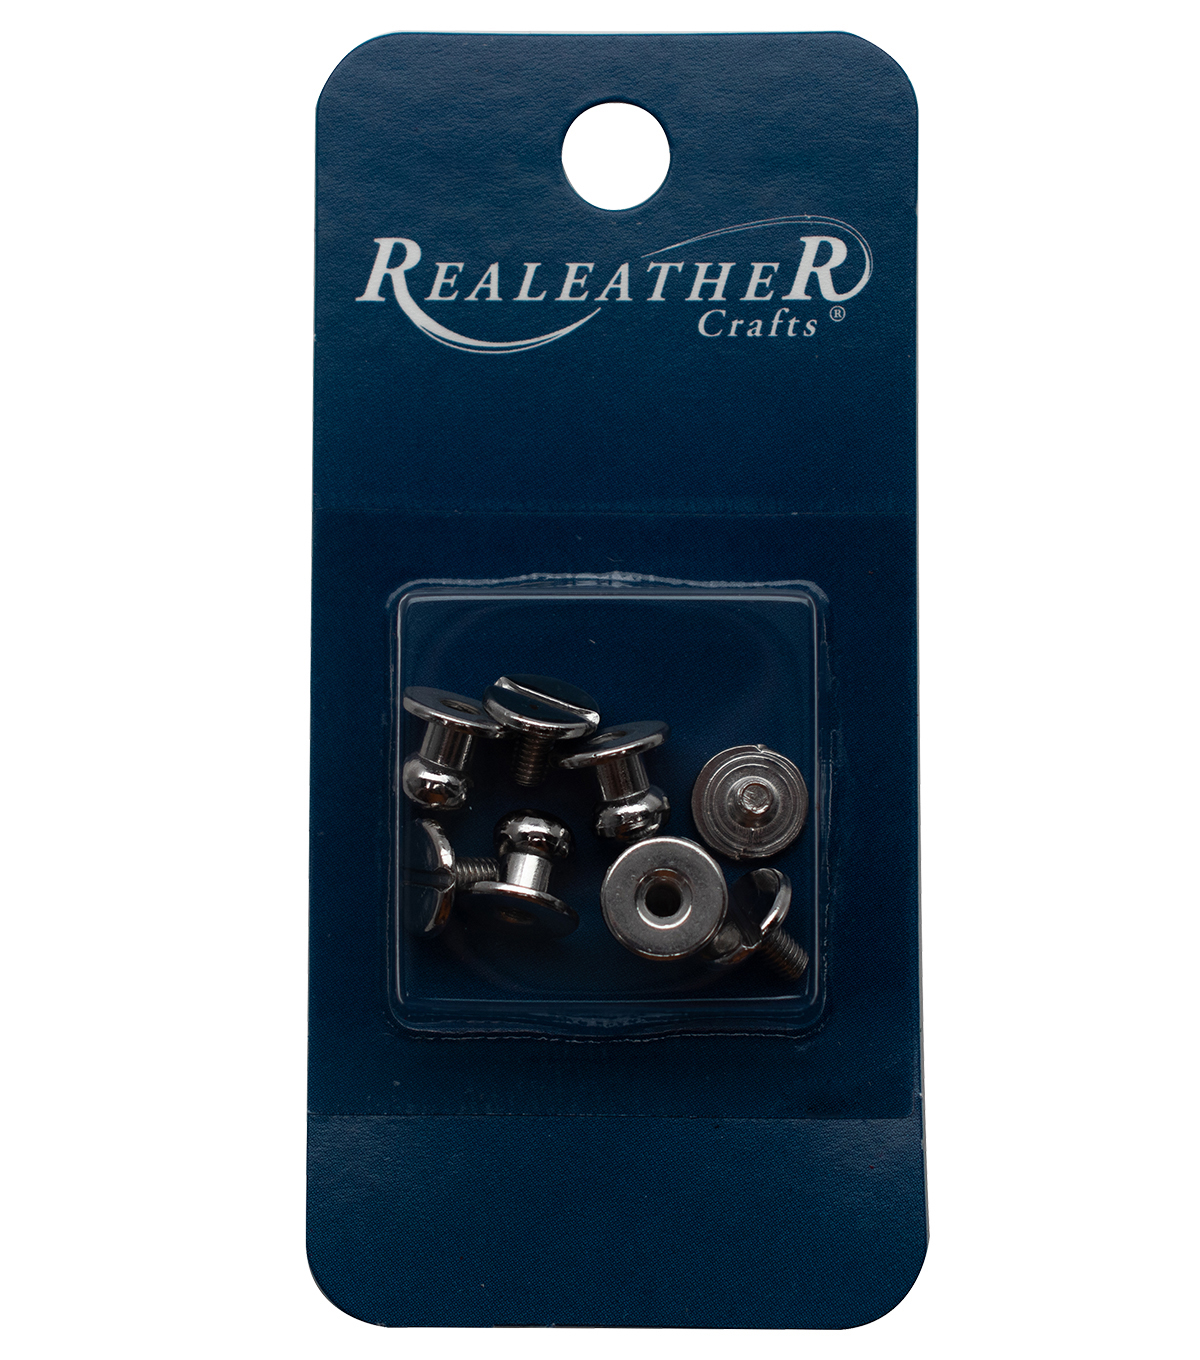 Realeather 4pk Button Studs-Nickel